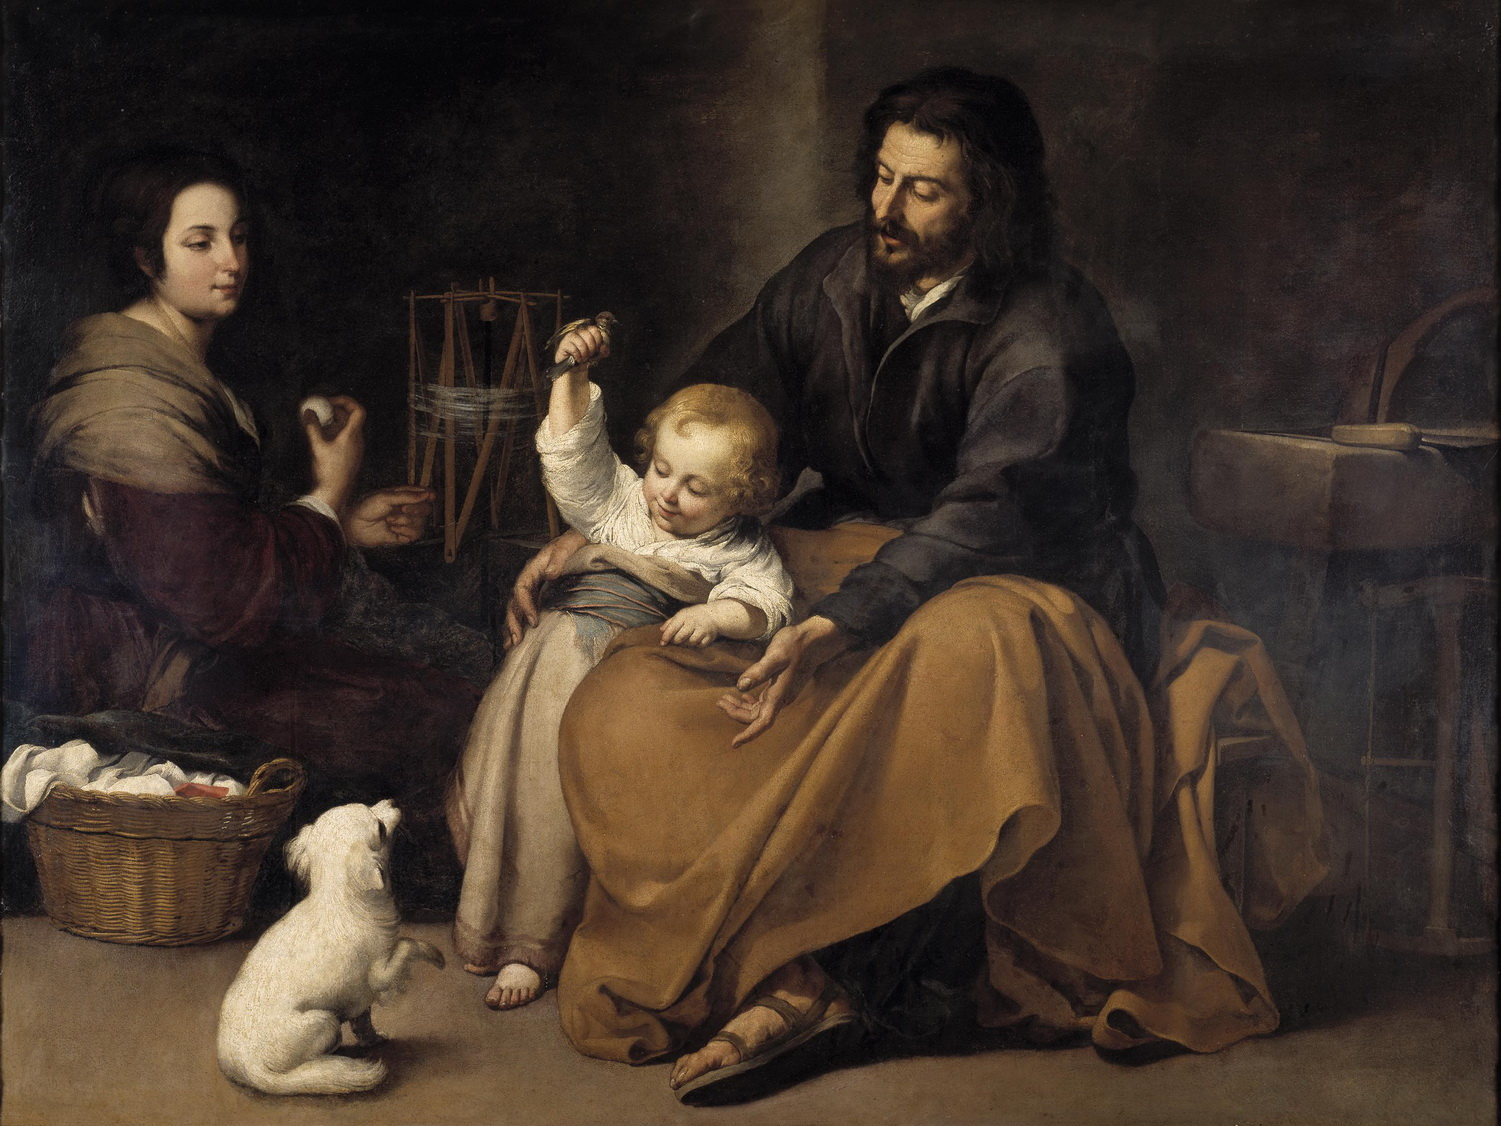 Bartolomé Esteban Perez Murillo The Holy Family with dog c. 164550-1500